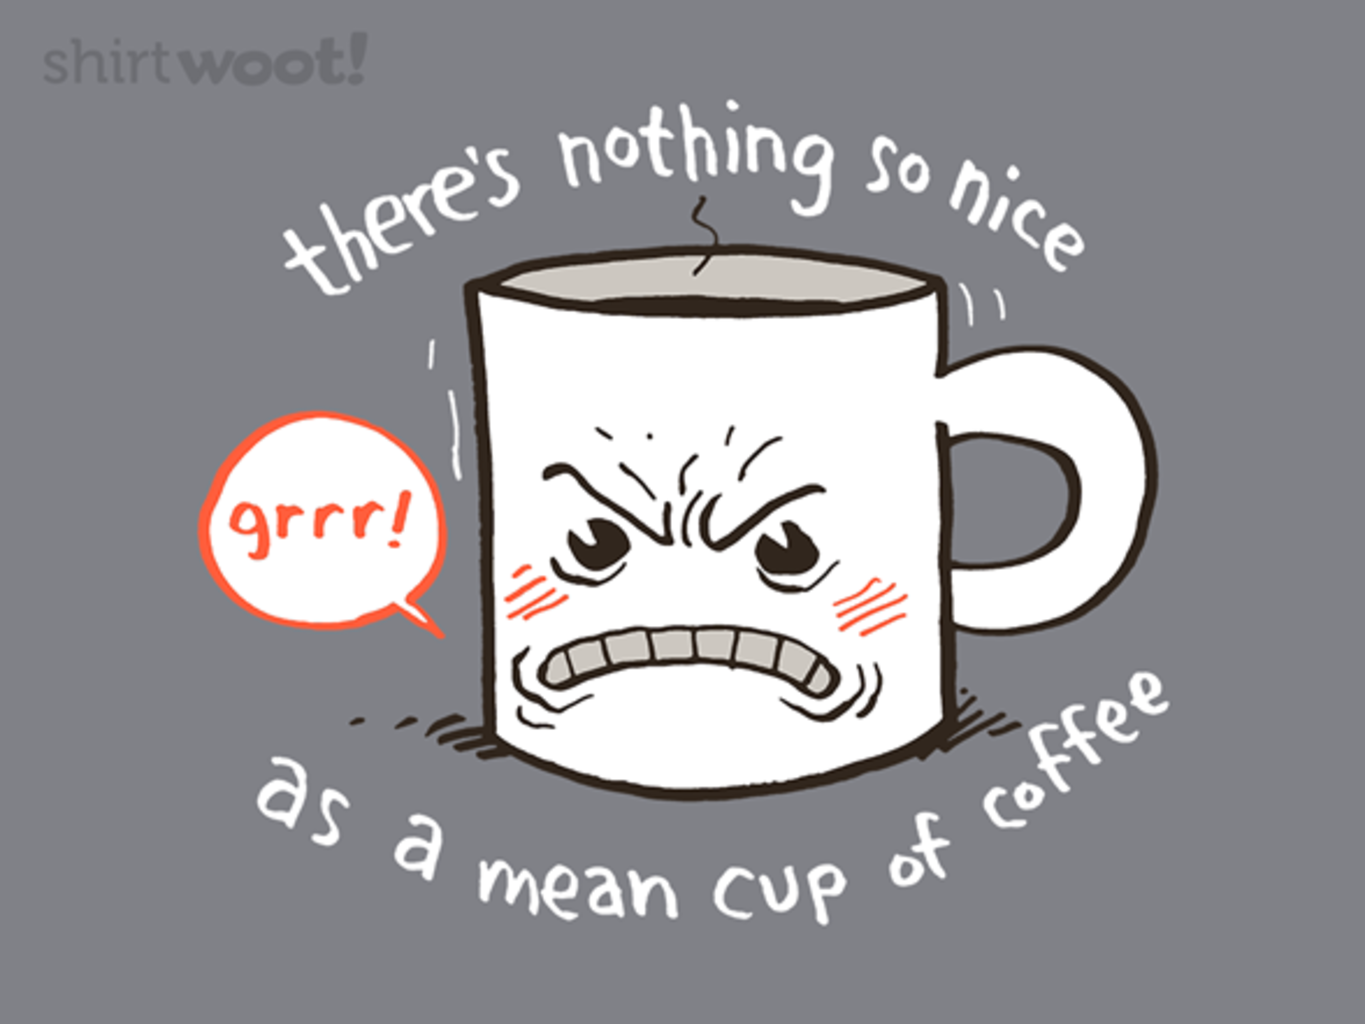 Woot!: A Mean Cuppa